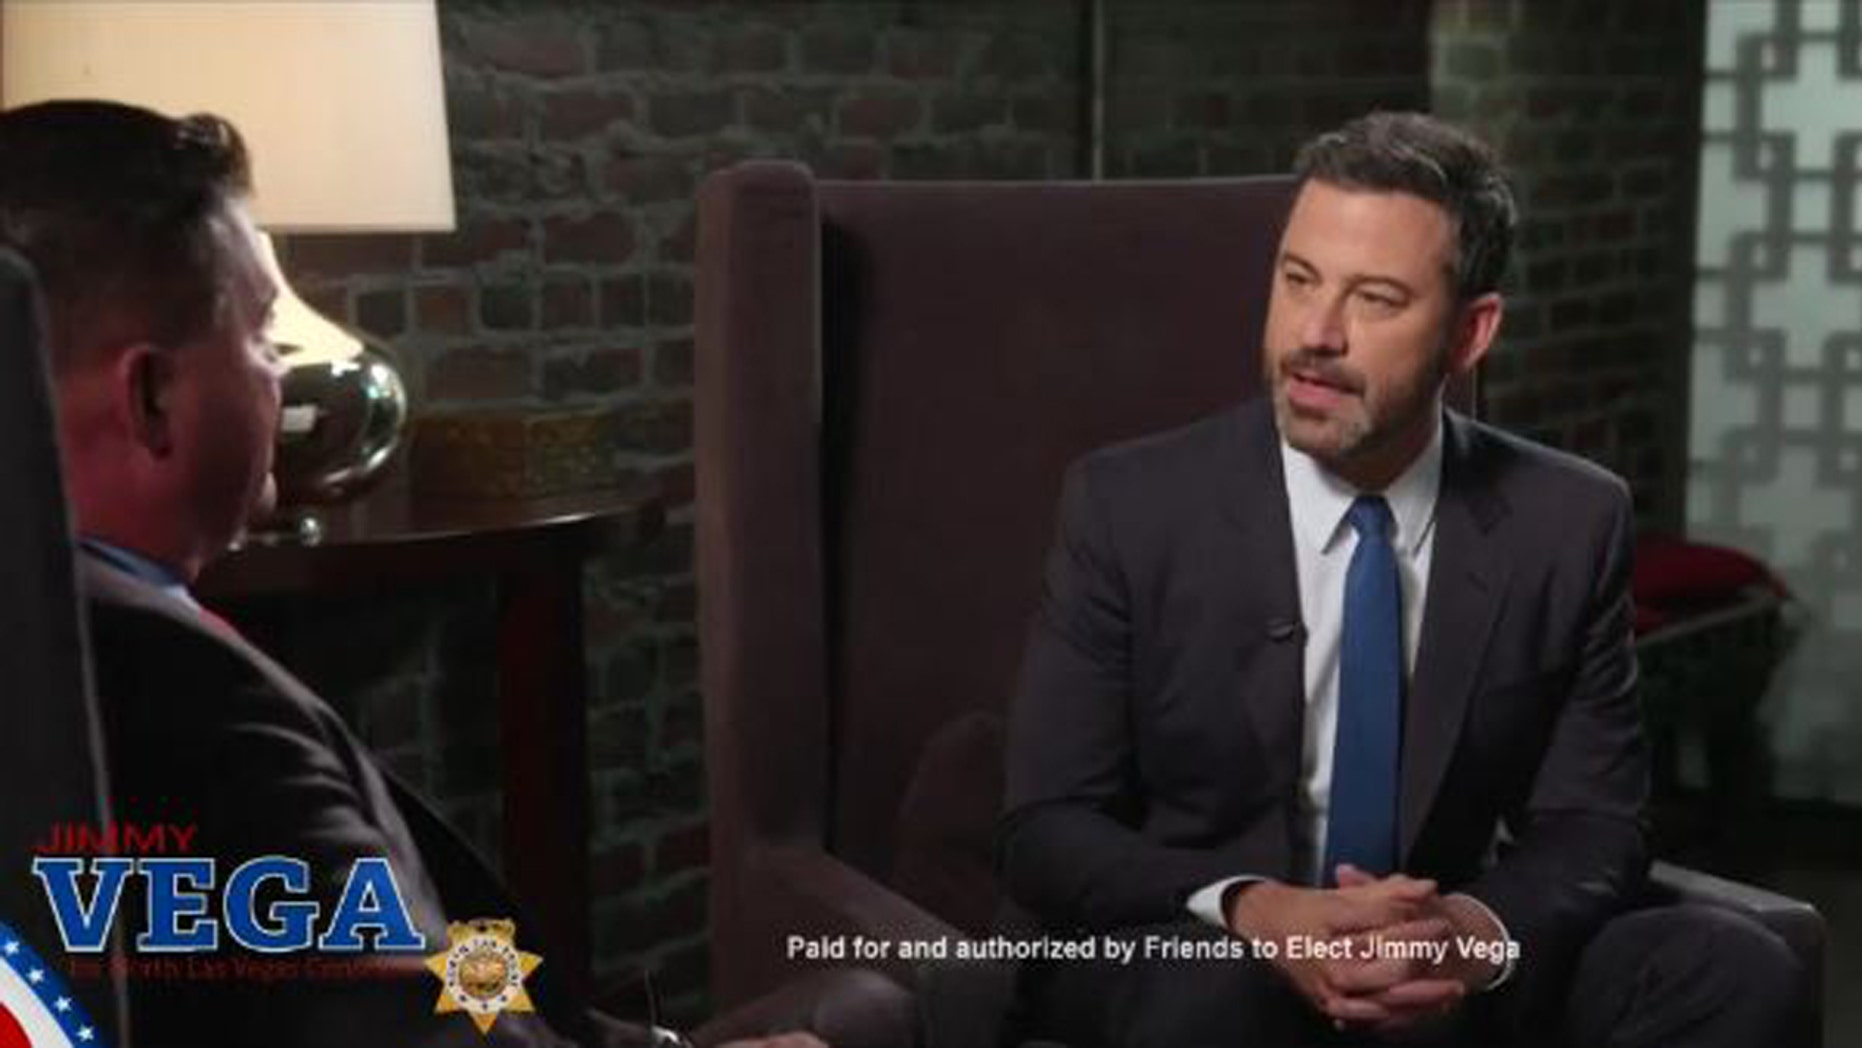 Jimmy Kimmel appears in a campaign video to support his longtime friend Jimmy Vega for North Las Vegas constable.